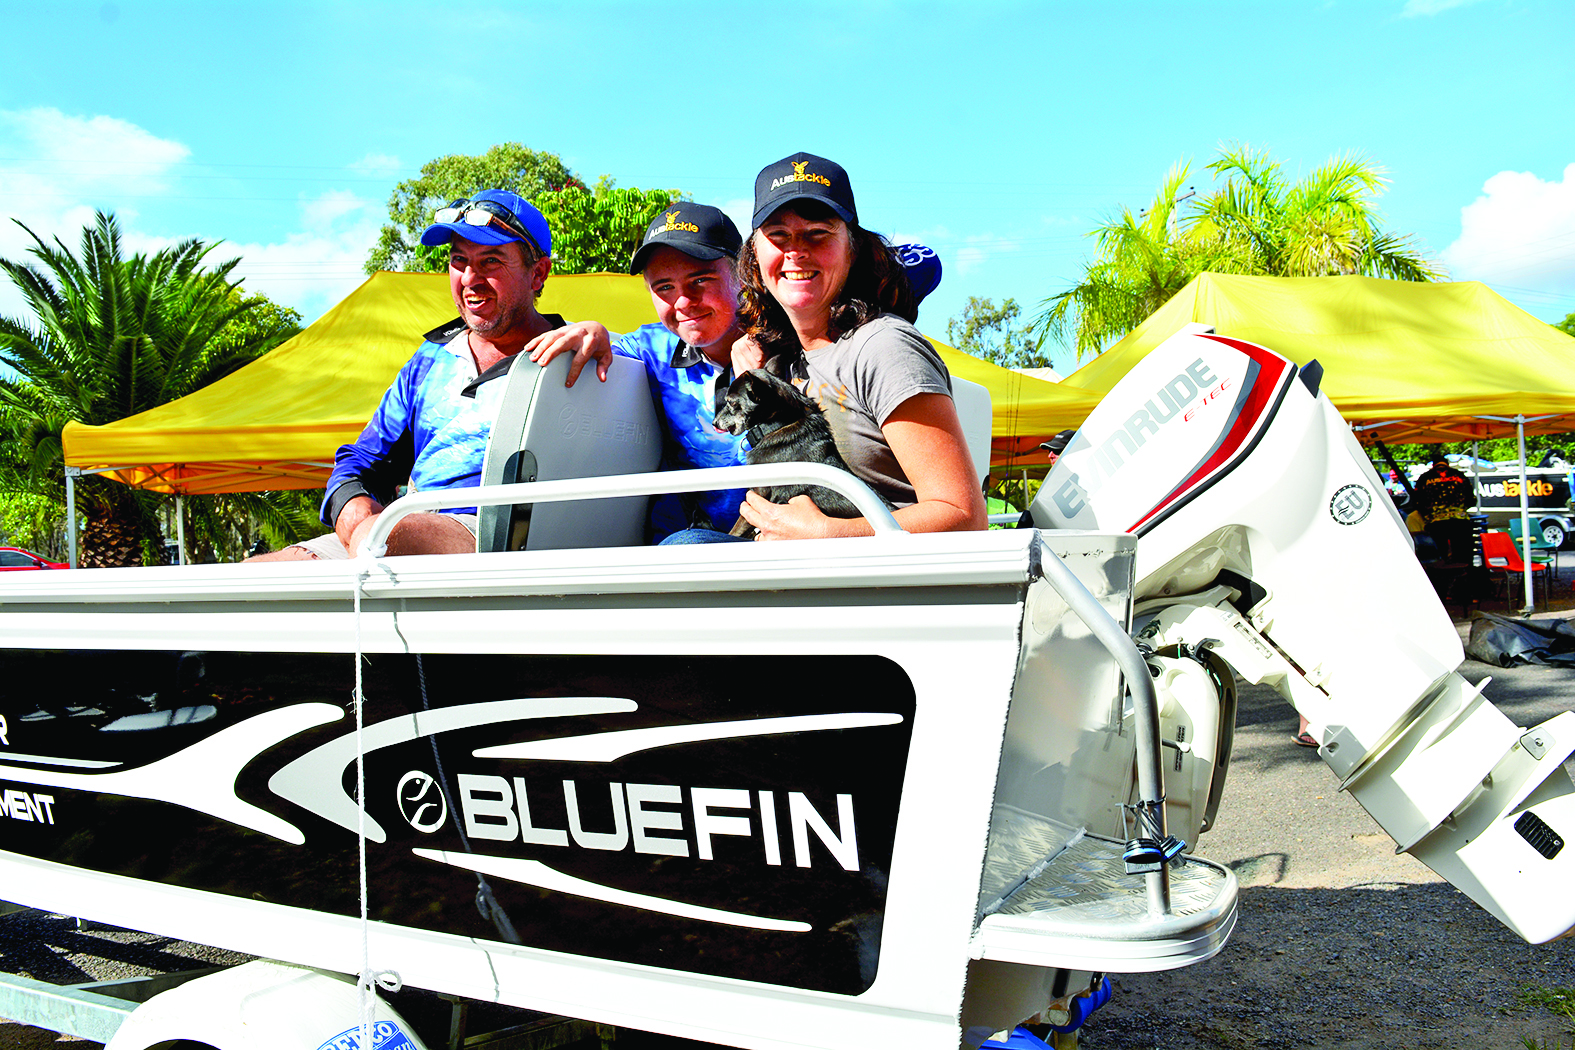 The Pedler family in their brand-new Bluefin prize boat.